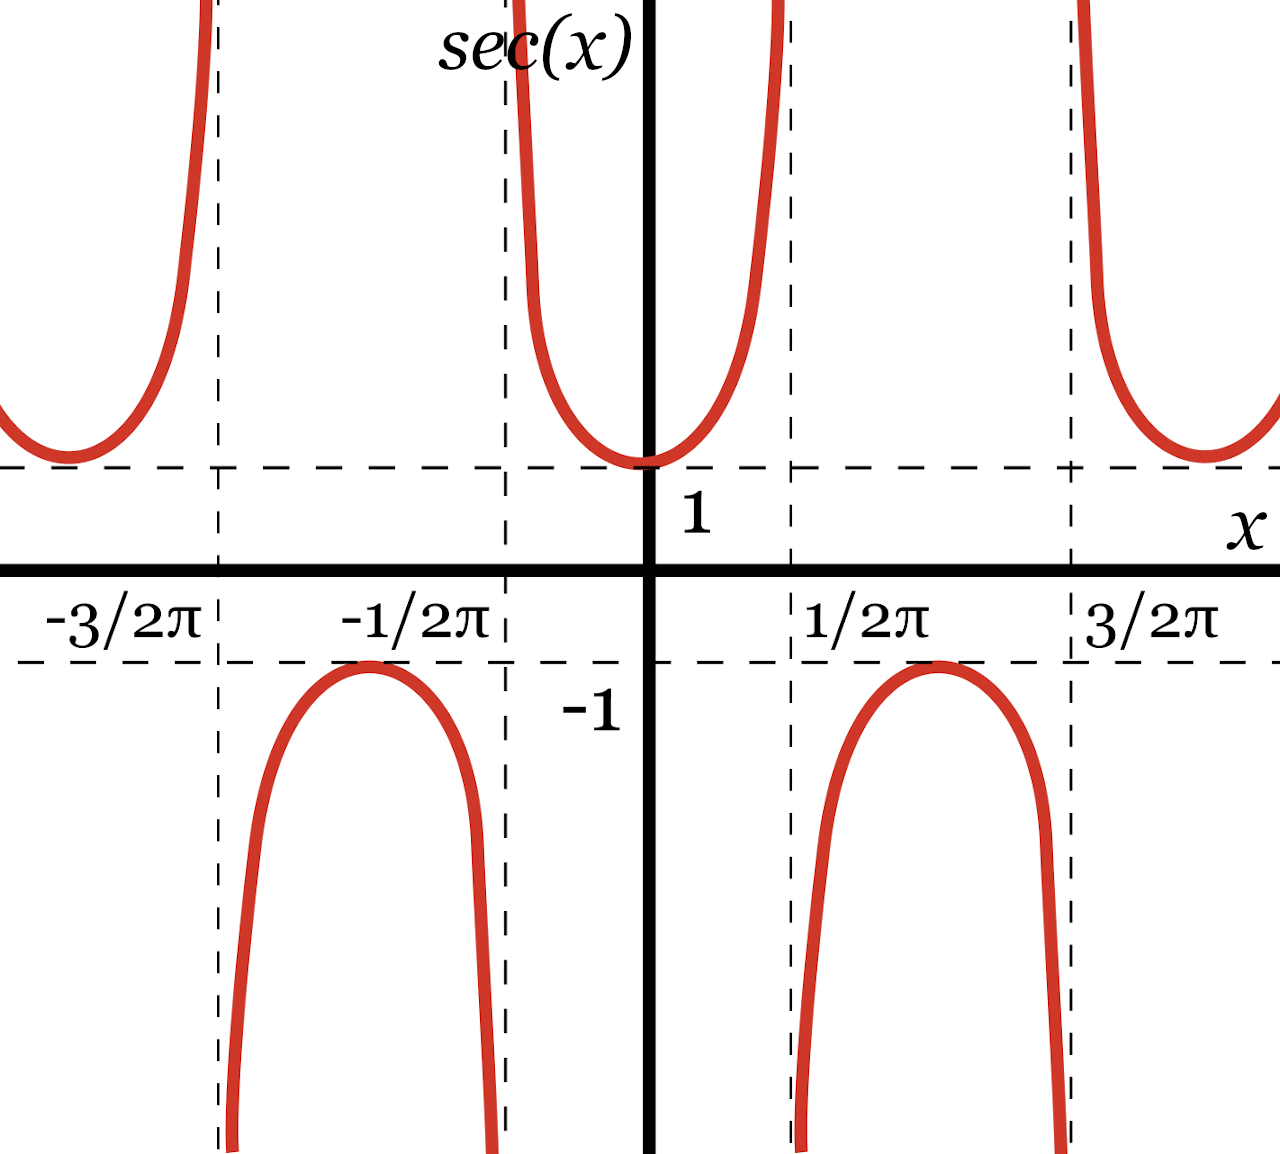 graph of the repeating curves representing possible secant values